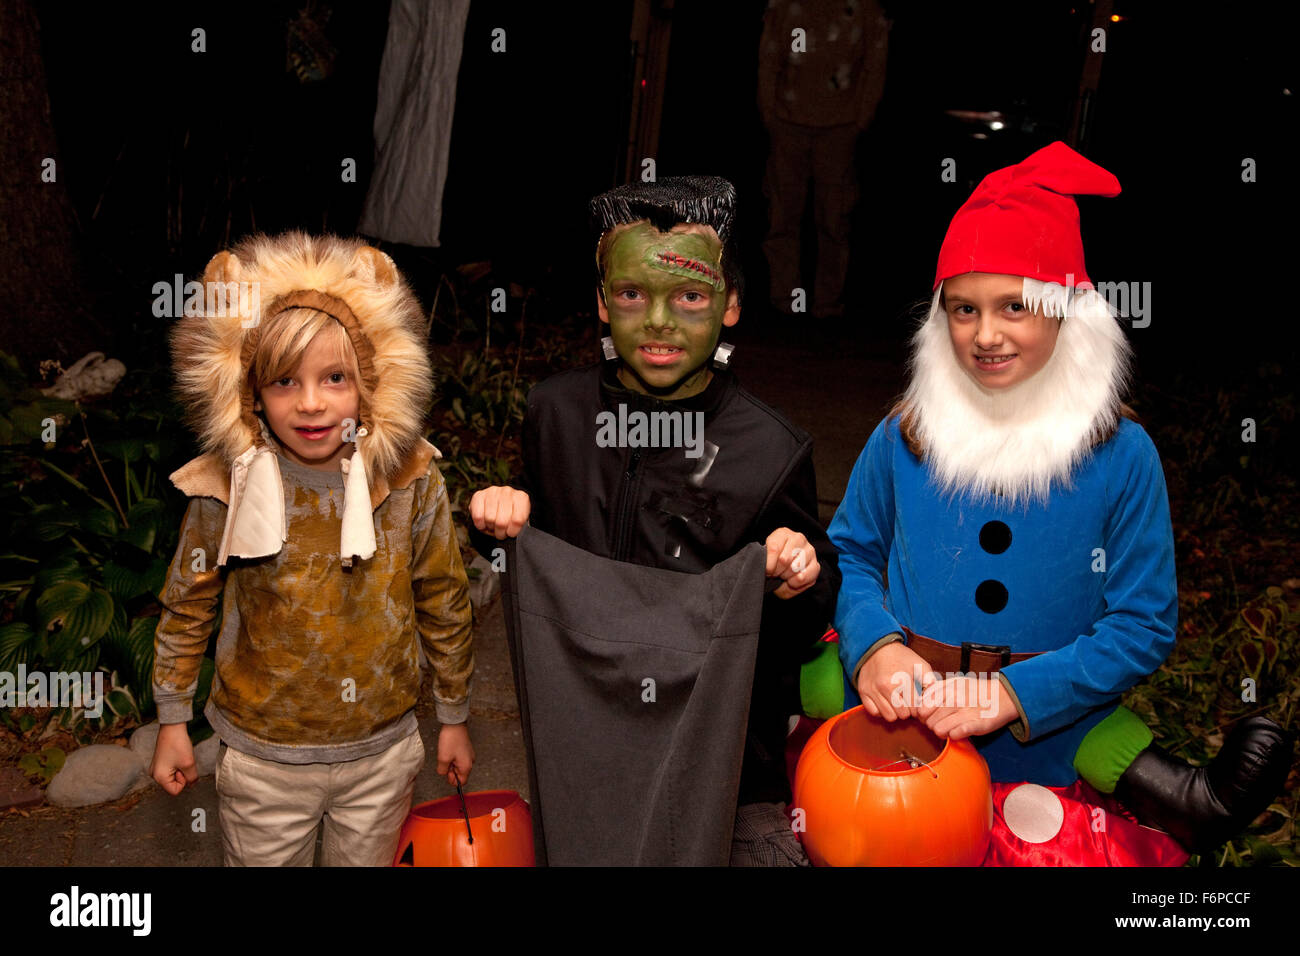 Halloween Costumes For 3 Kids.Three Kids Dressed In Their Halloween Costumes Trick Or